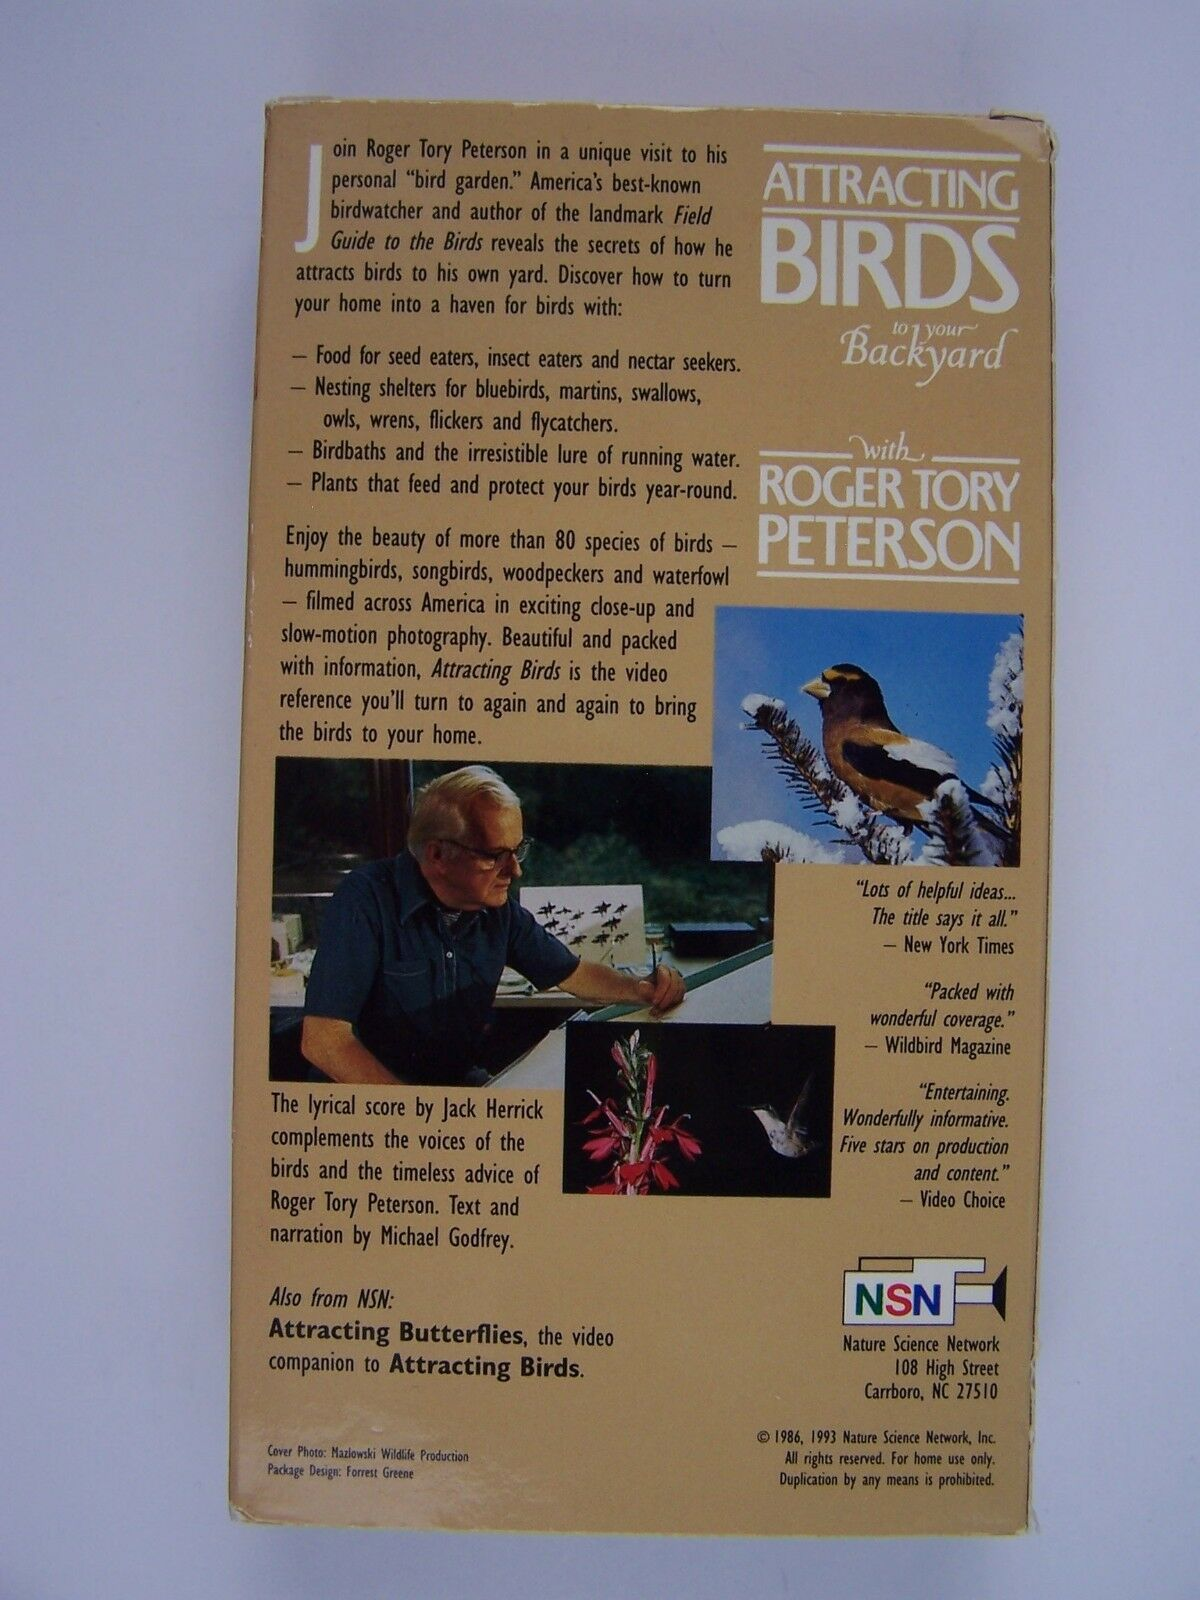 Attracting Birds to Your Backyard with Roger T Peterson